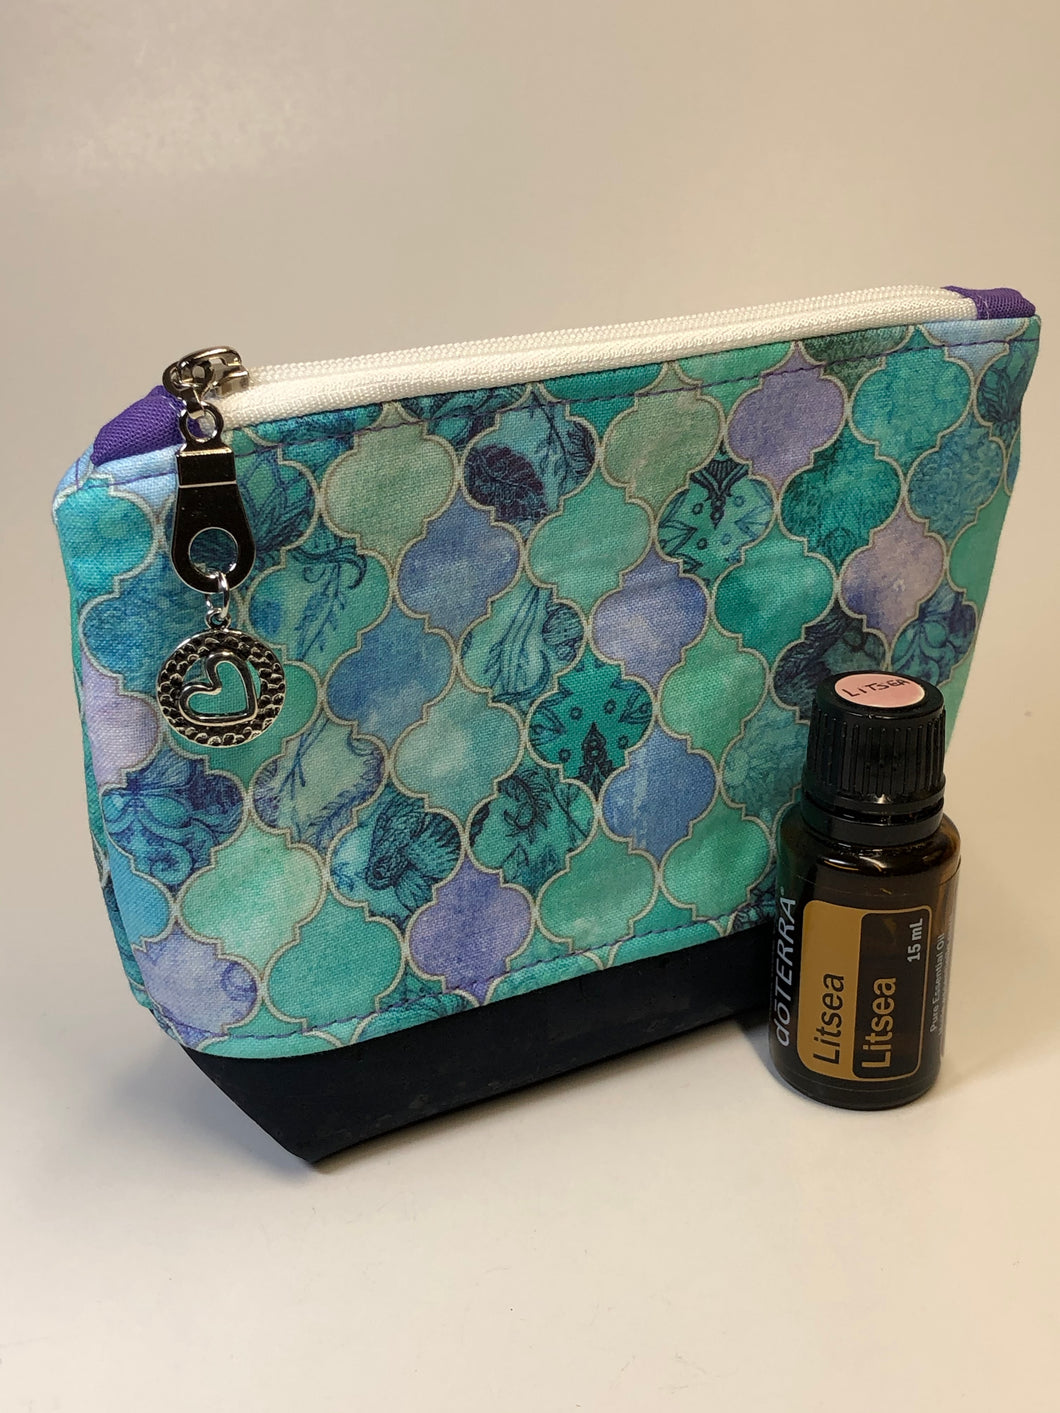 Small Essential Oil/Make Up Case